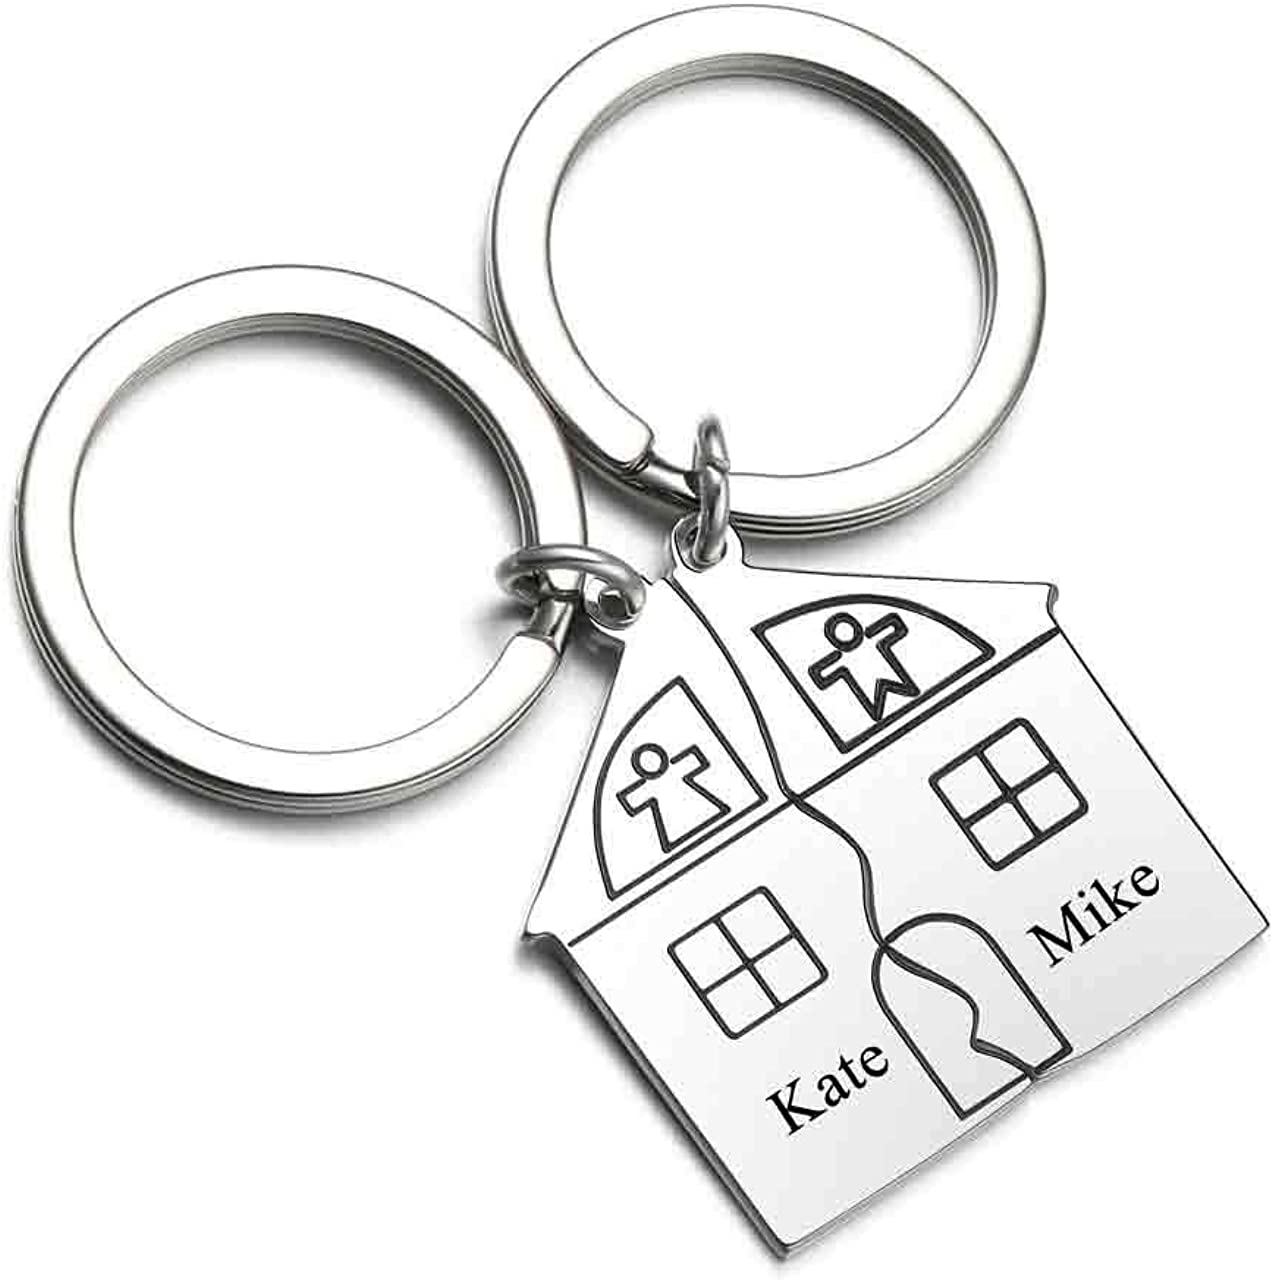 Personalized Master Free Engraving Custom 2pcs Matching House Design First Home Keychain Moving in Keyring Housewarming Gift for Couples Boyfriend Girlfriend